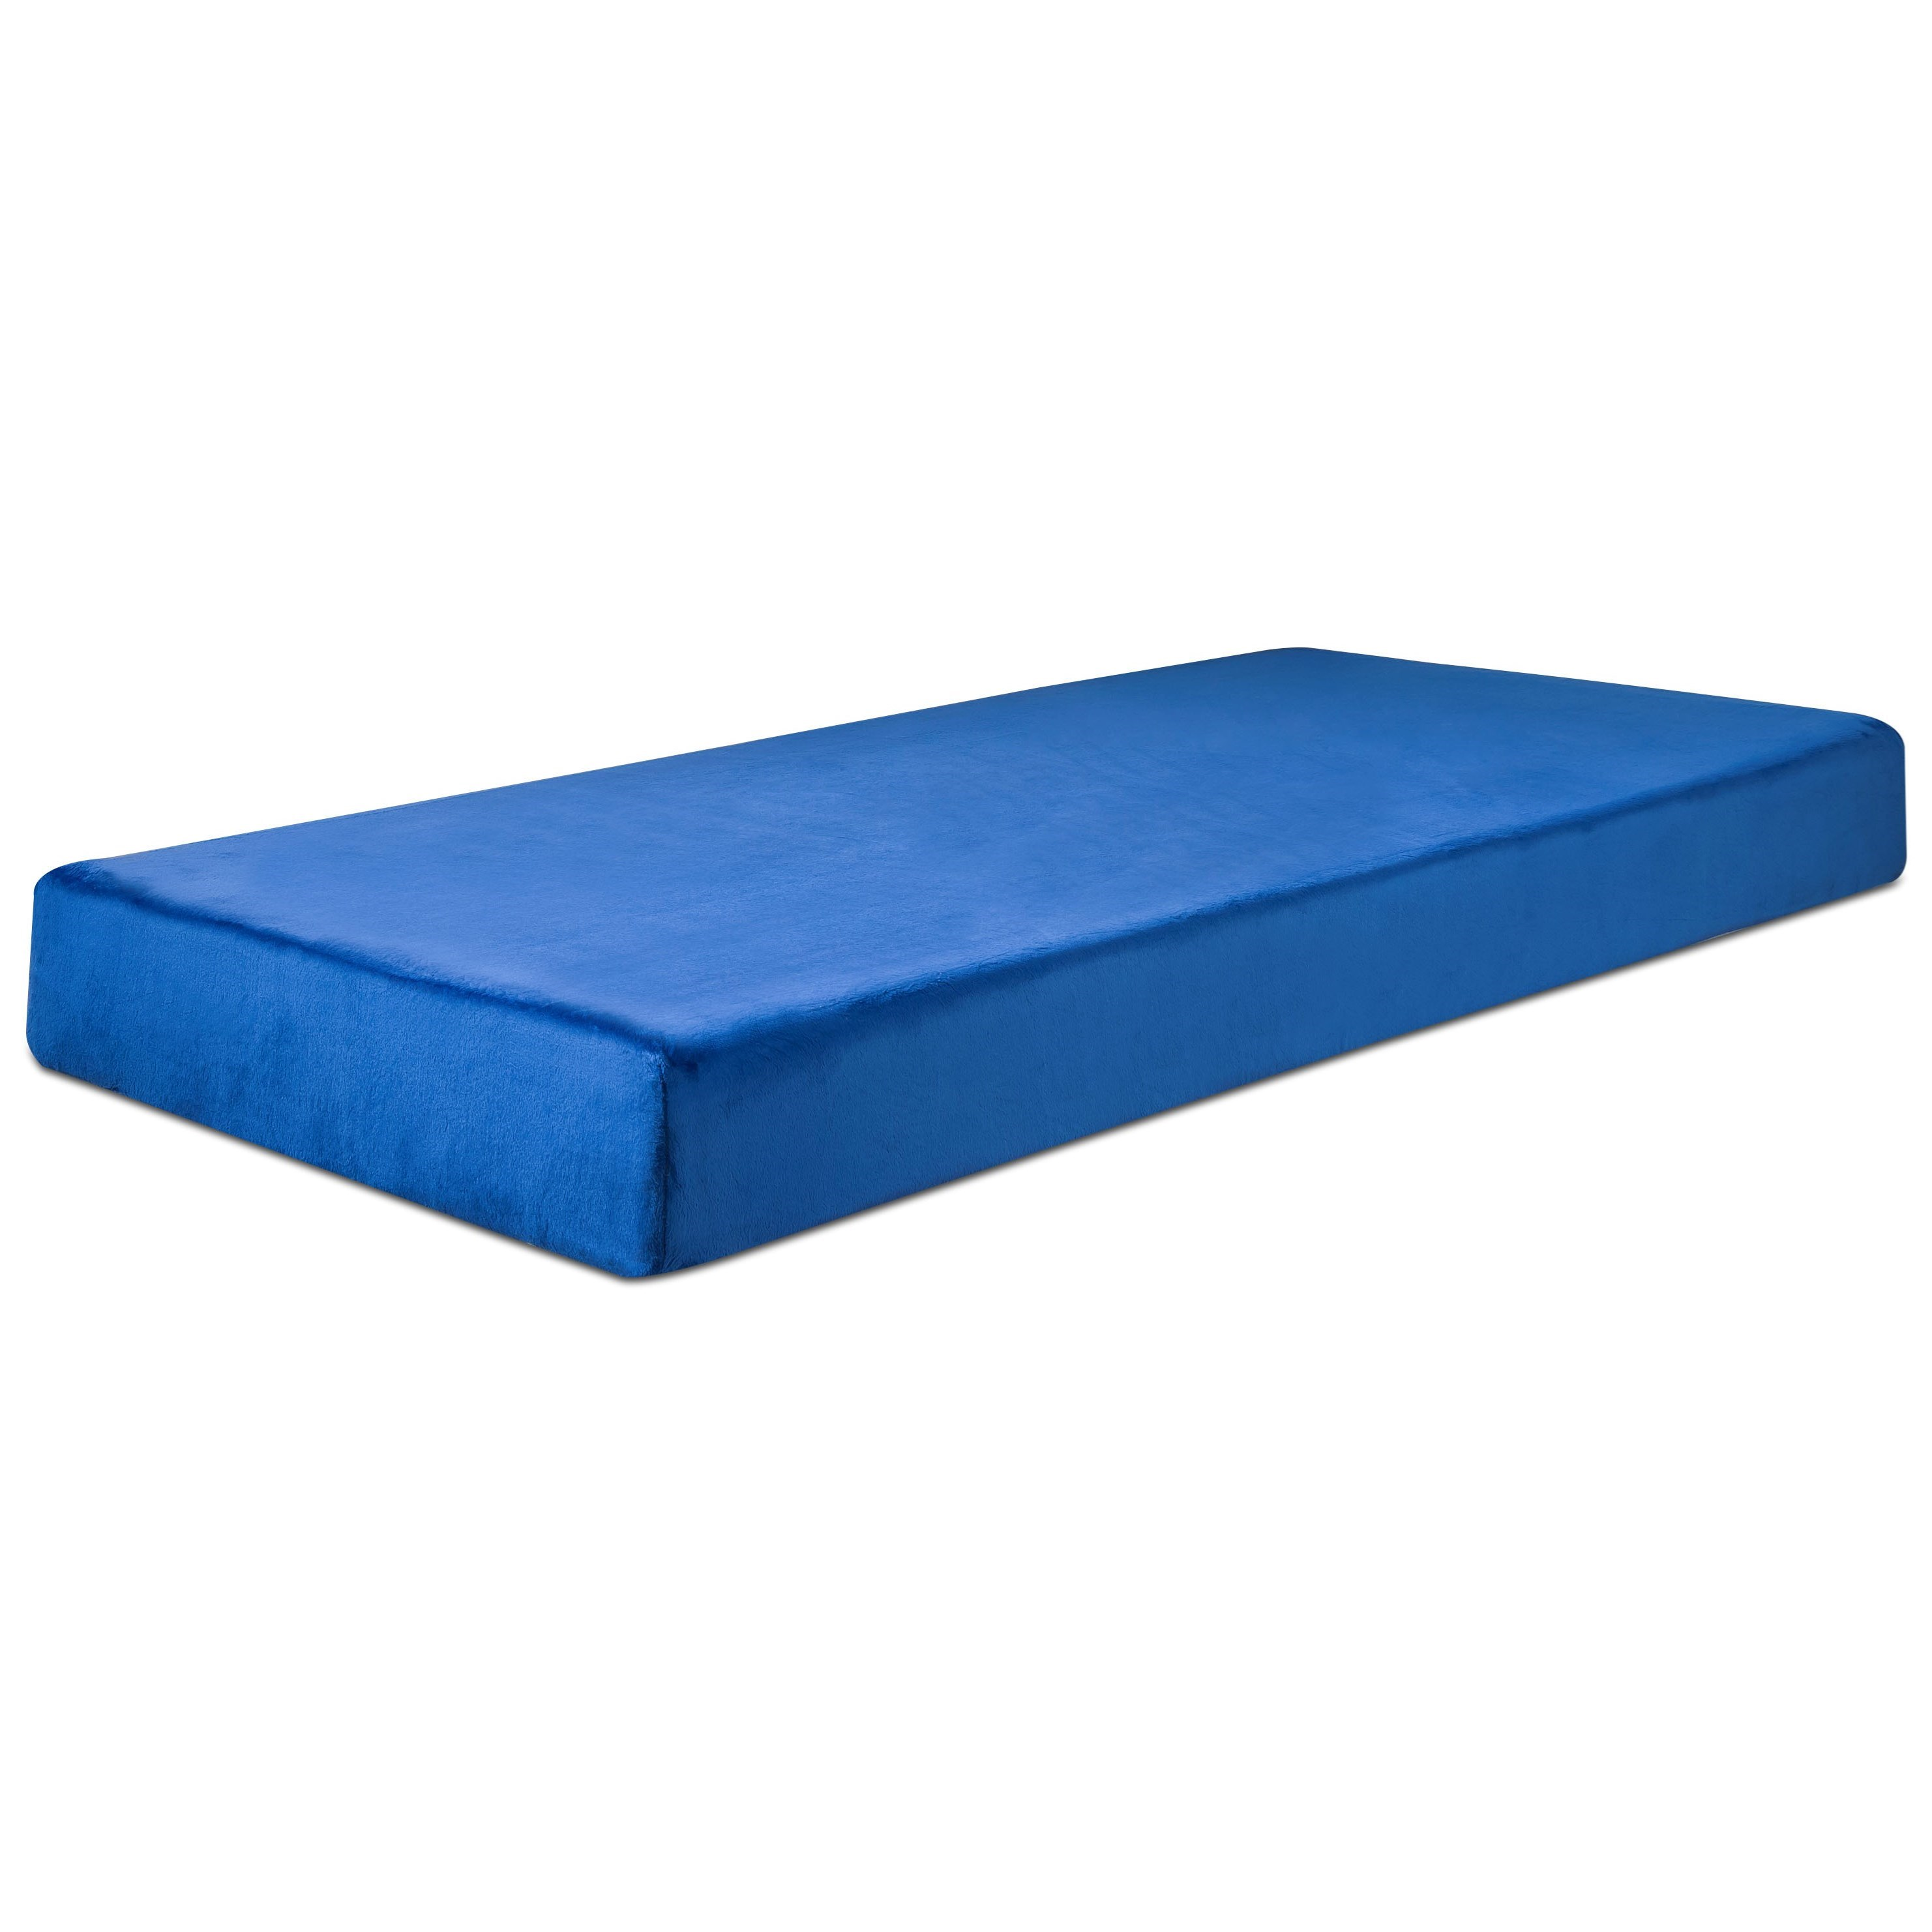 "Full Blue 7"" Memory Foam Mattress"